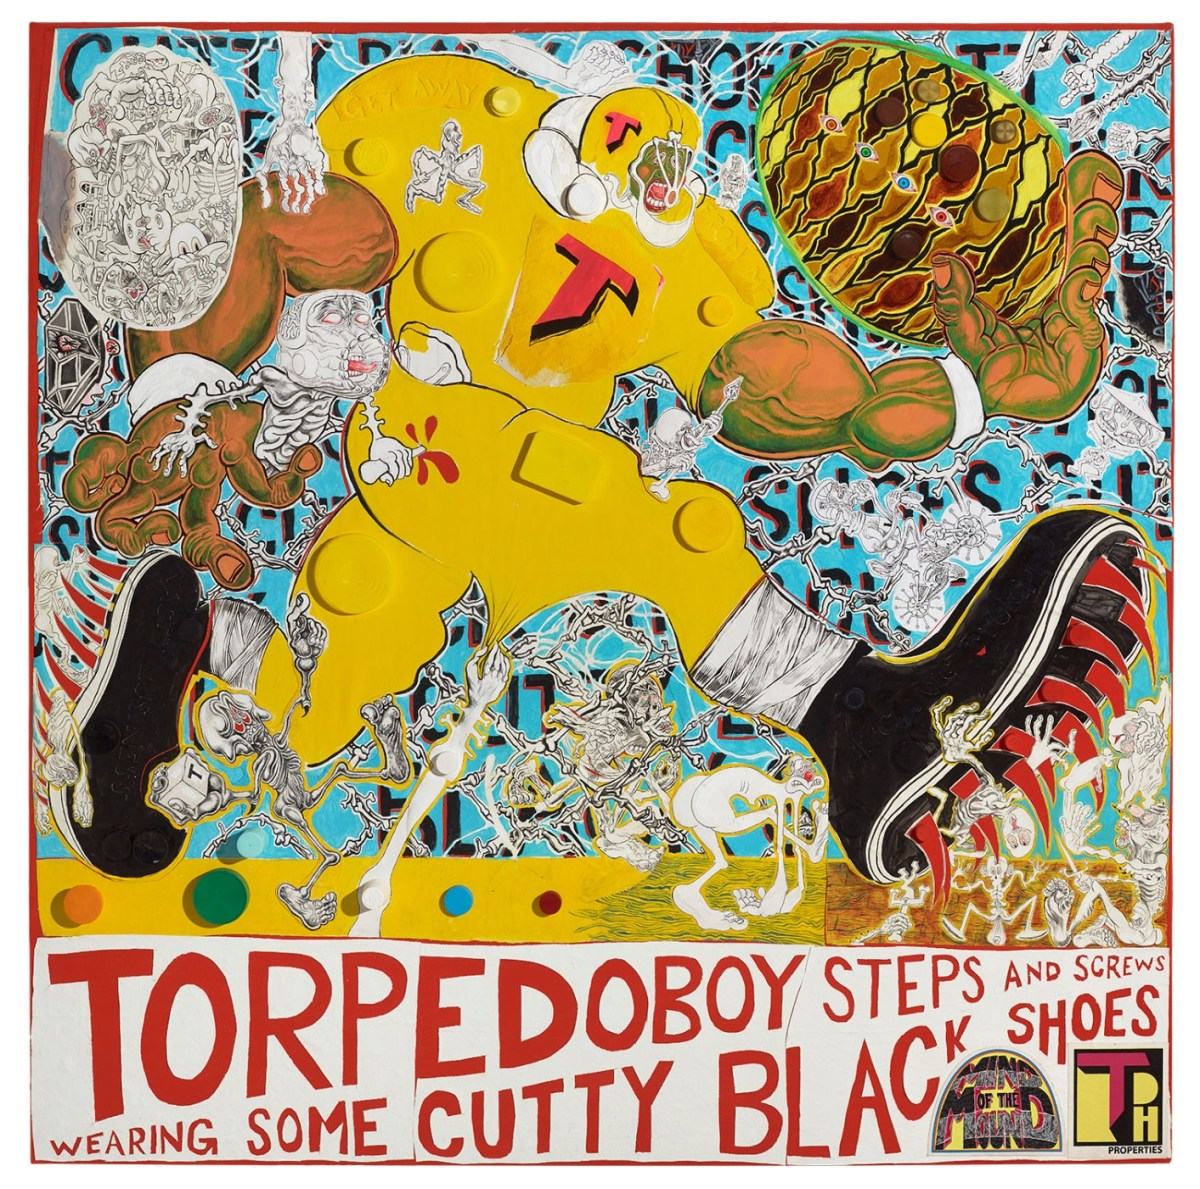 TorpedoBoy Steps and Screws Wearing Some Cutty Black Shoes; Credit: Courtesy Shulamit Nazarian Gallery